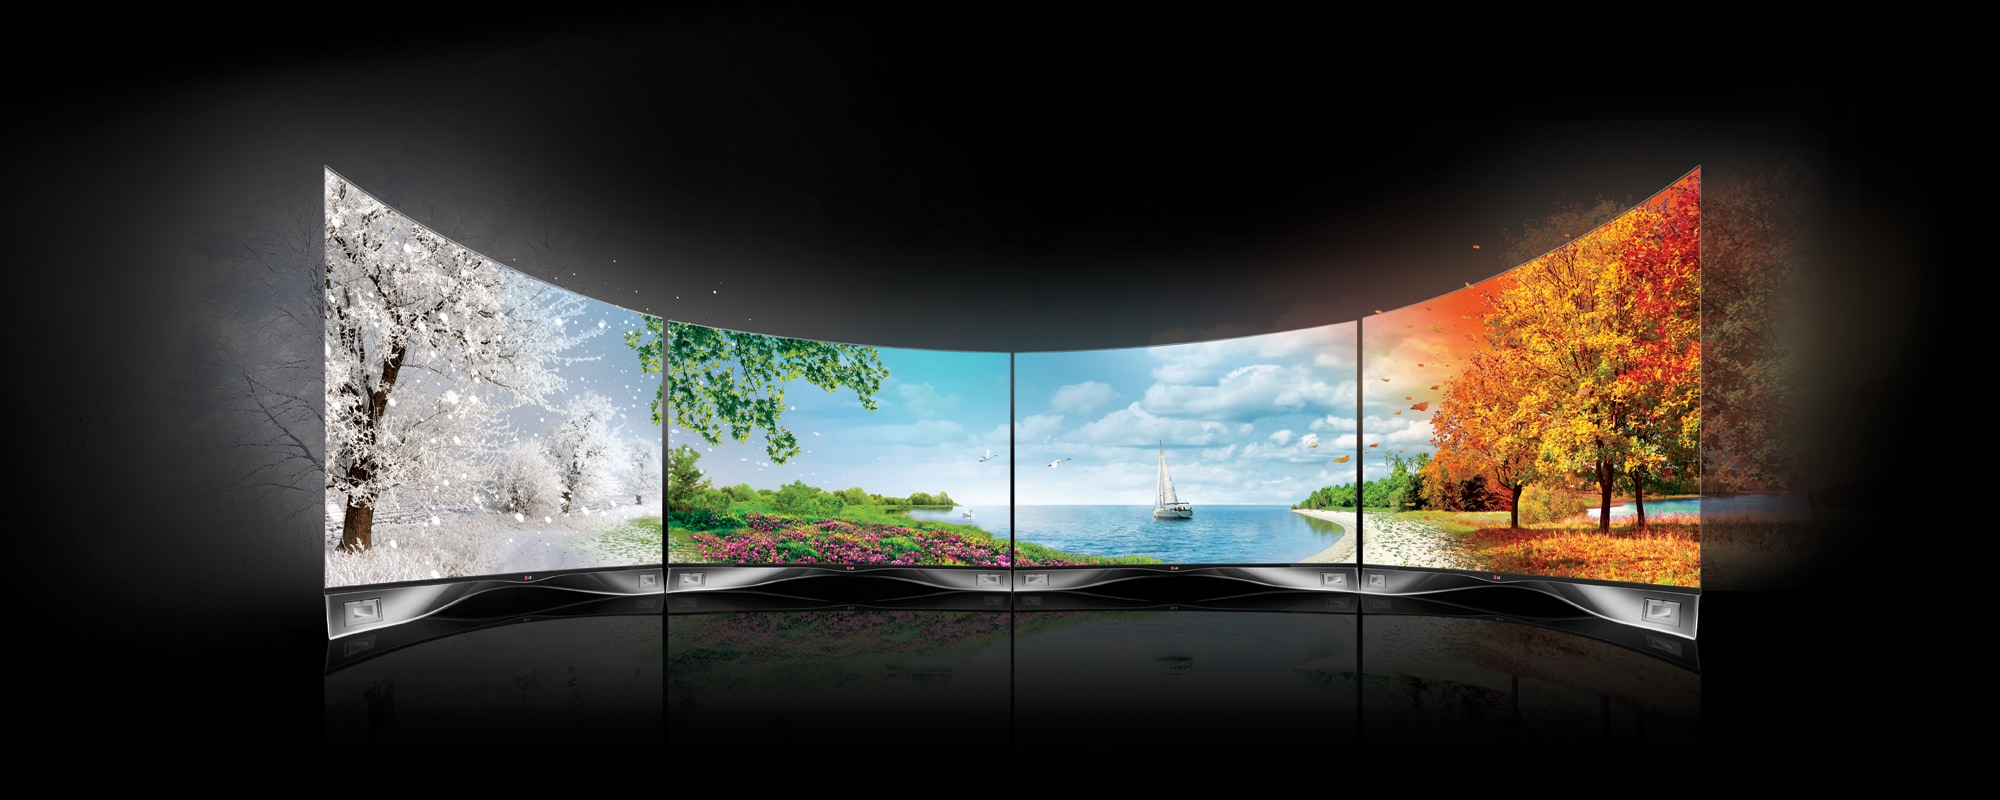 LG's CURVED OLED AND 4K ULTRA HDTV RANGE TO HIT STORES